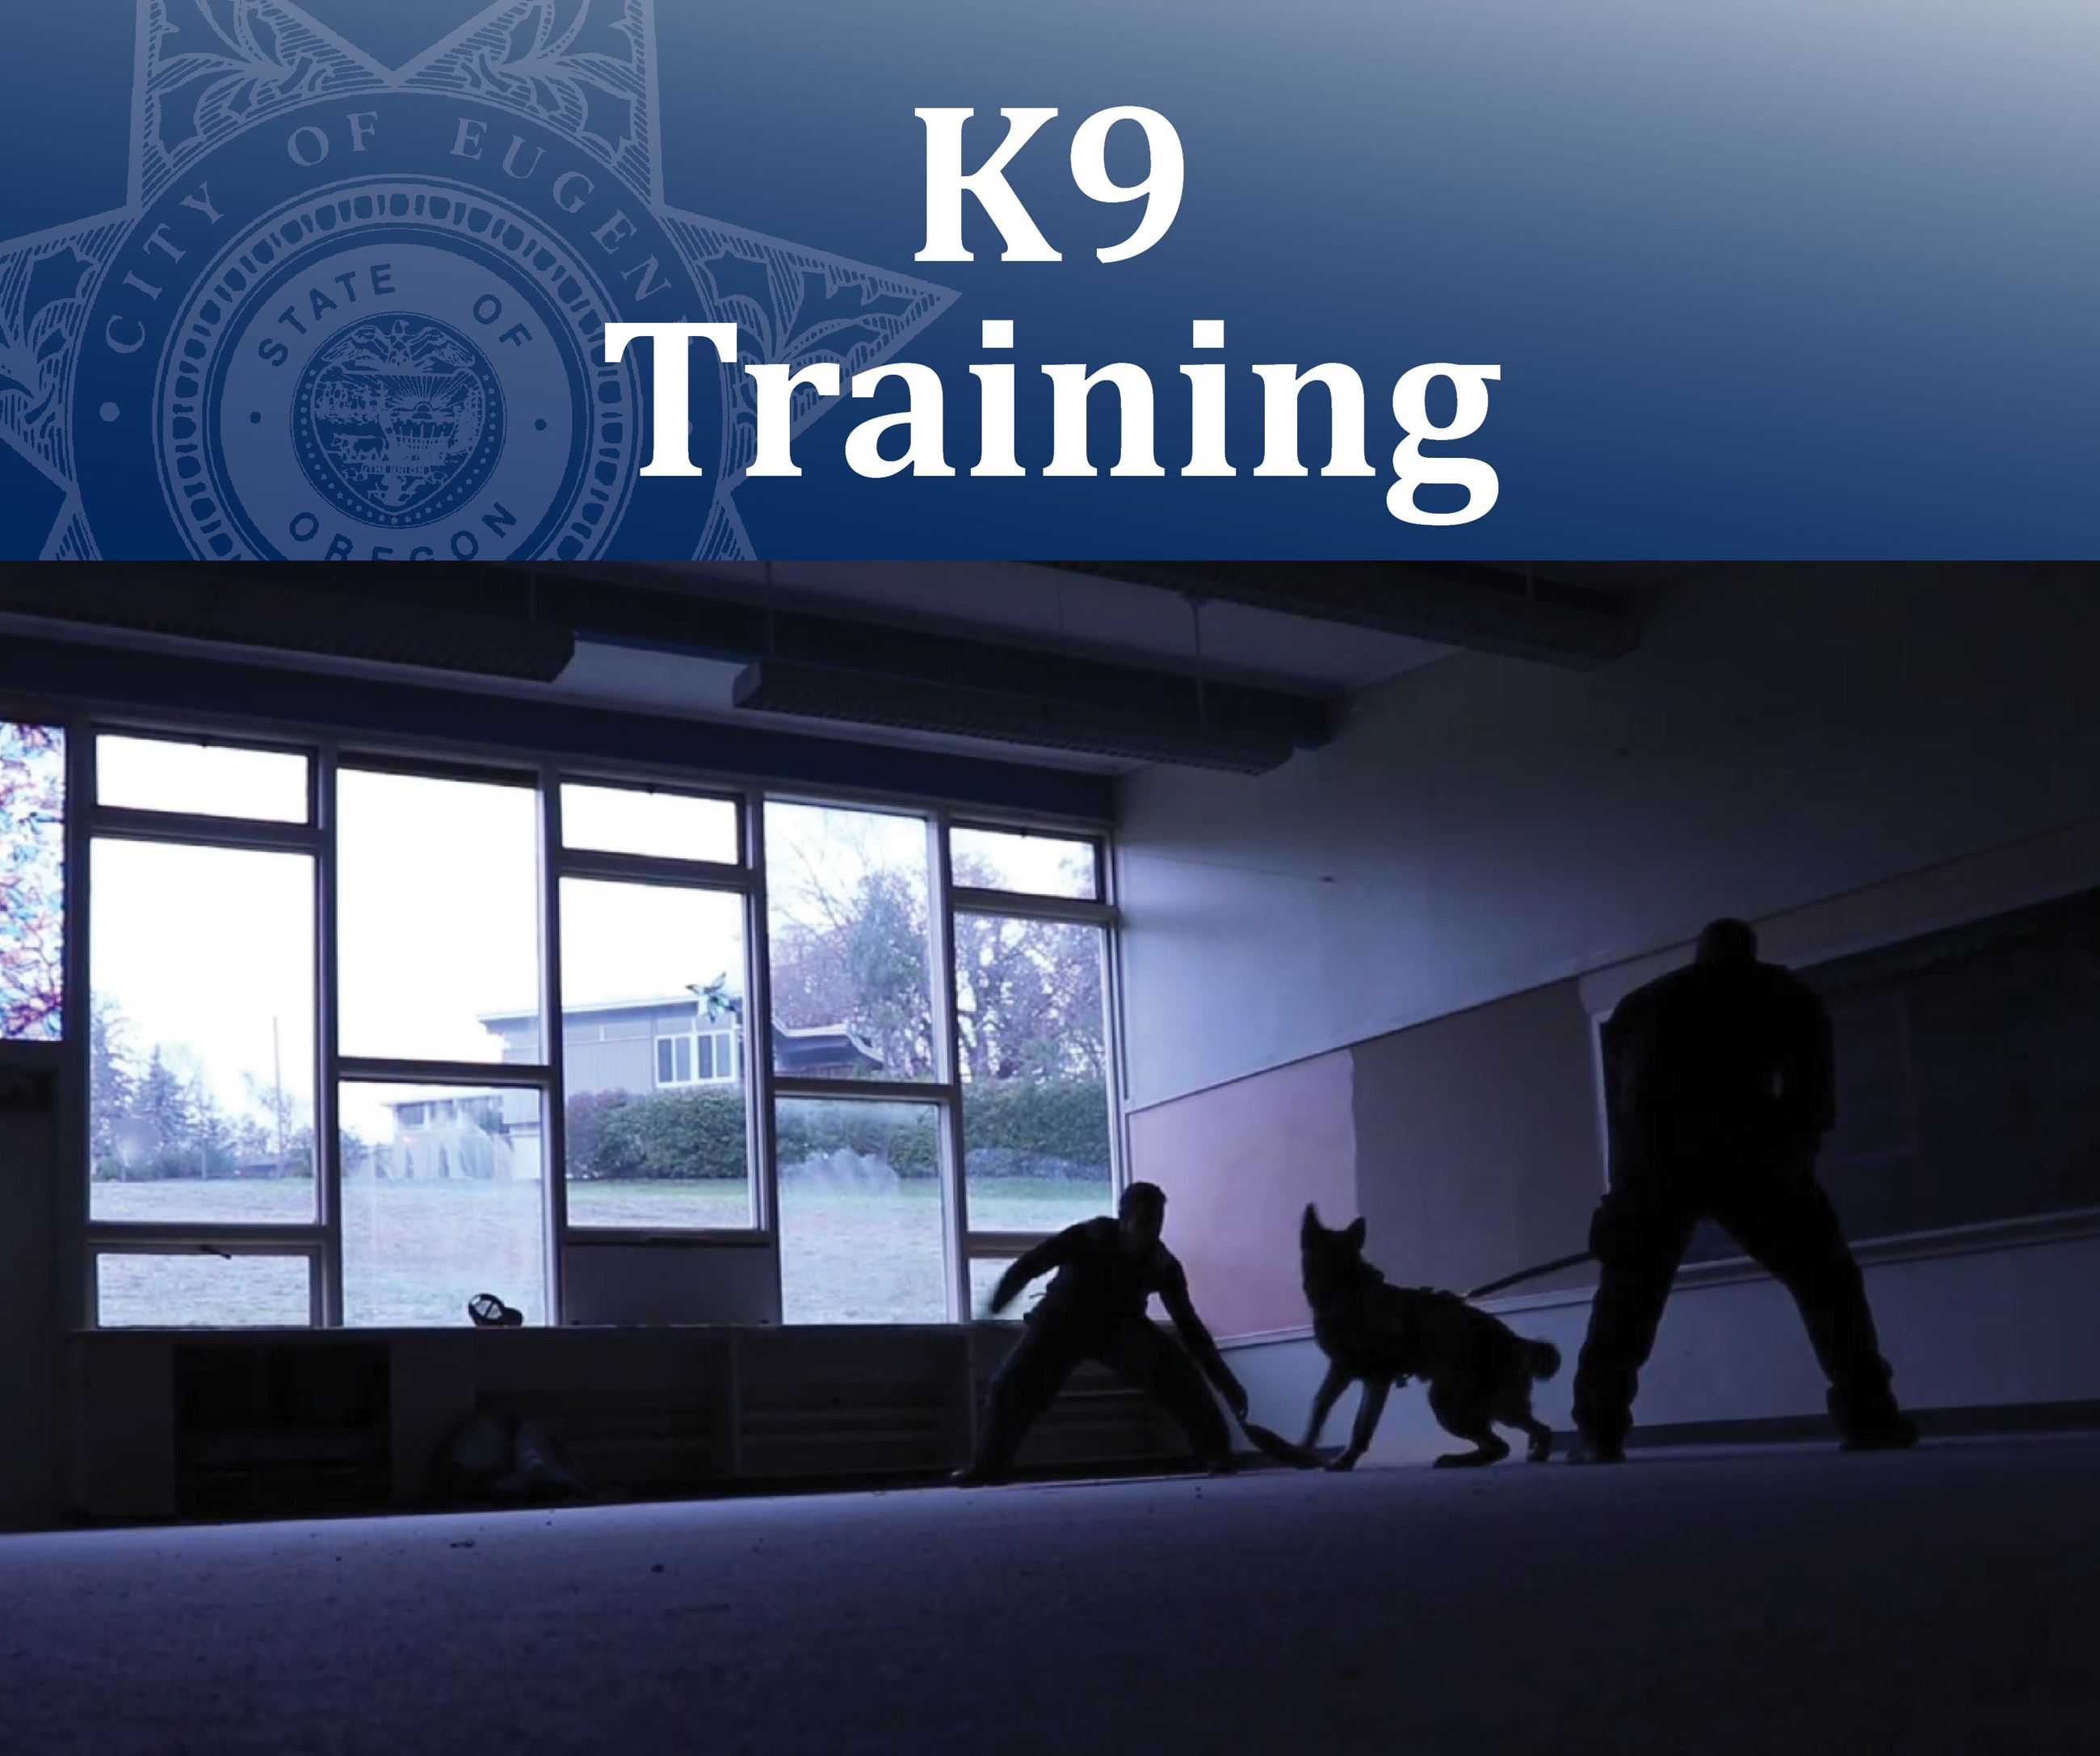 K9 Training Opens in new window